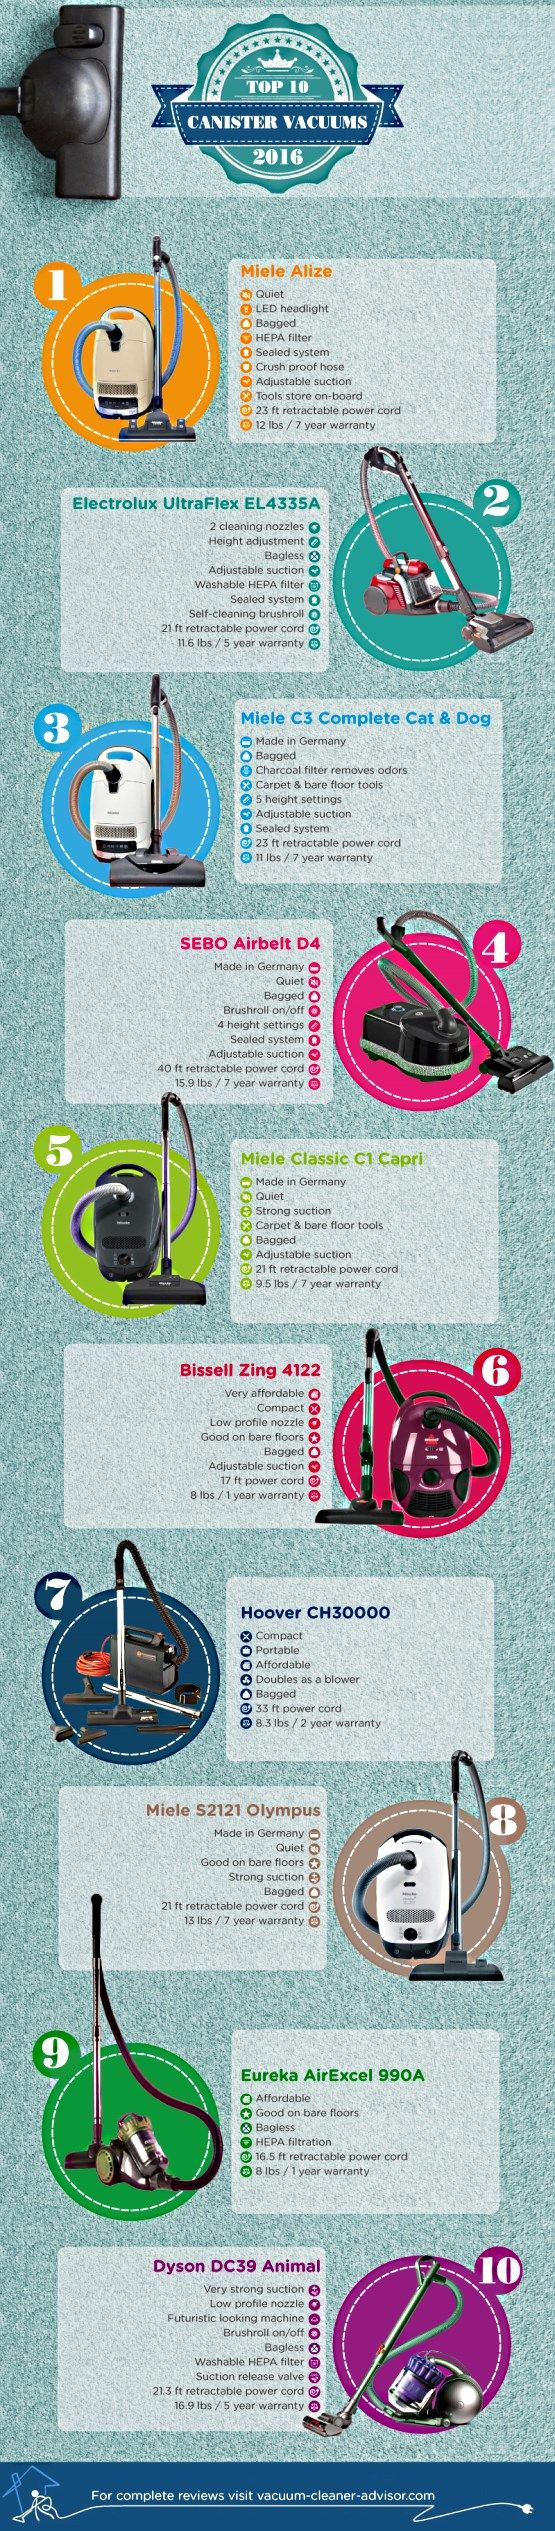 check out our infographic of the top 10 canister vacuums of labeled from 1